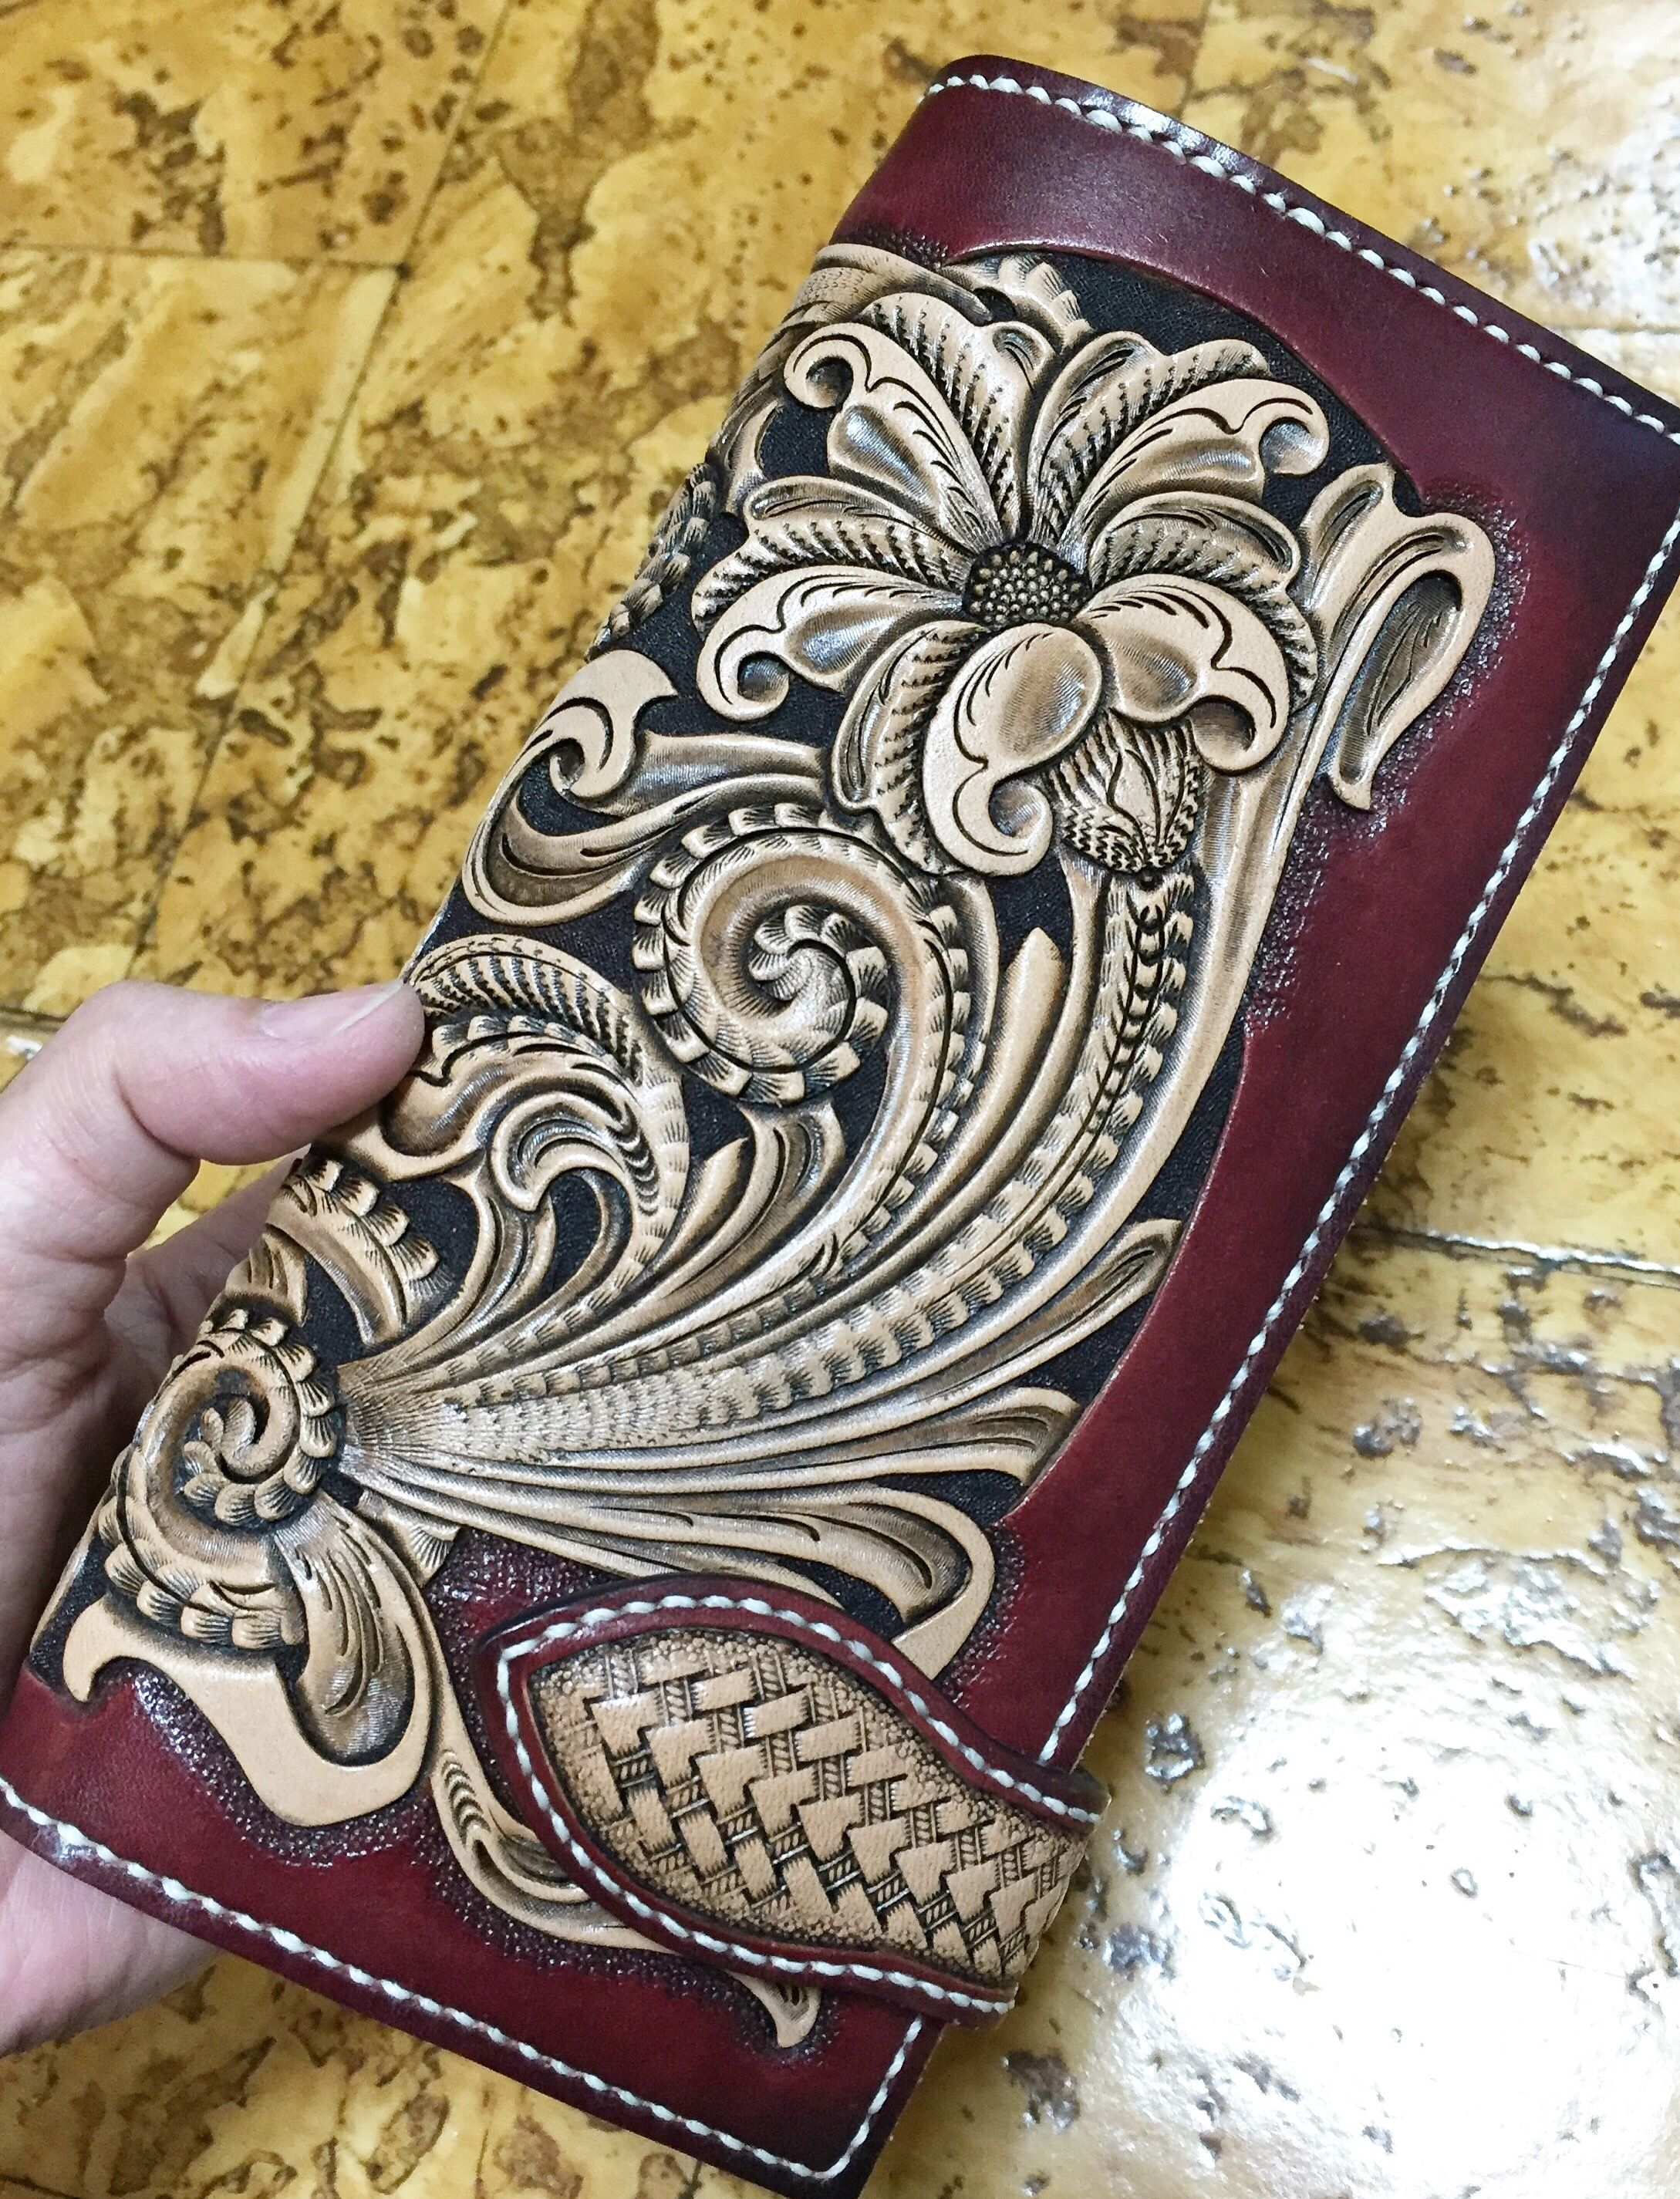 Top Notch Billfold #4001-00 Floral Tooling Pattern By Tandy Leather